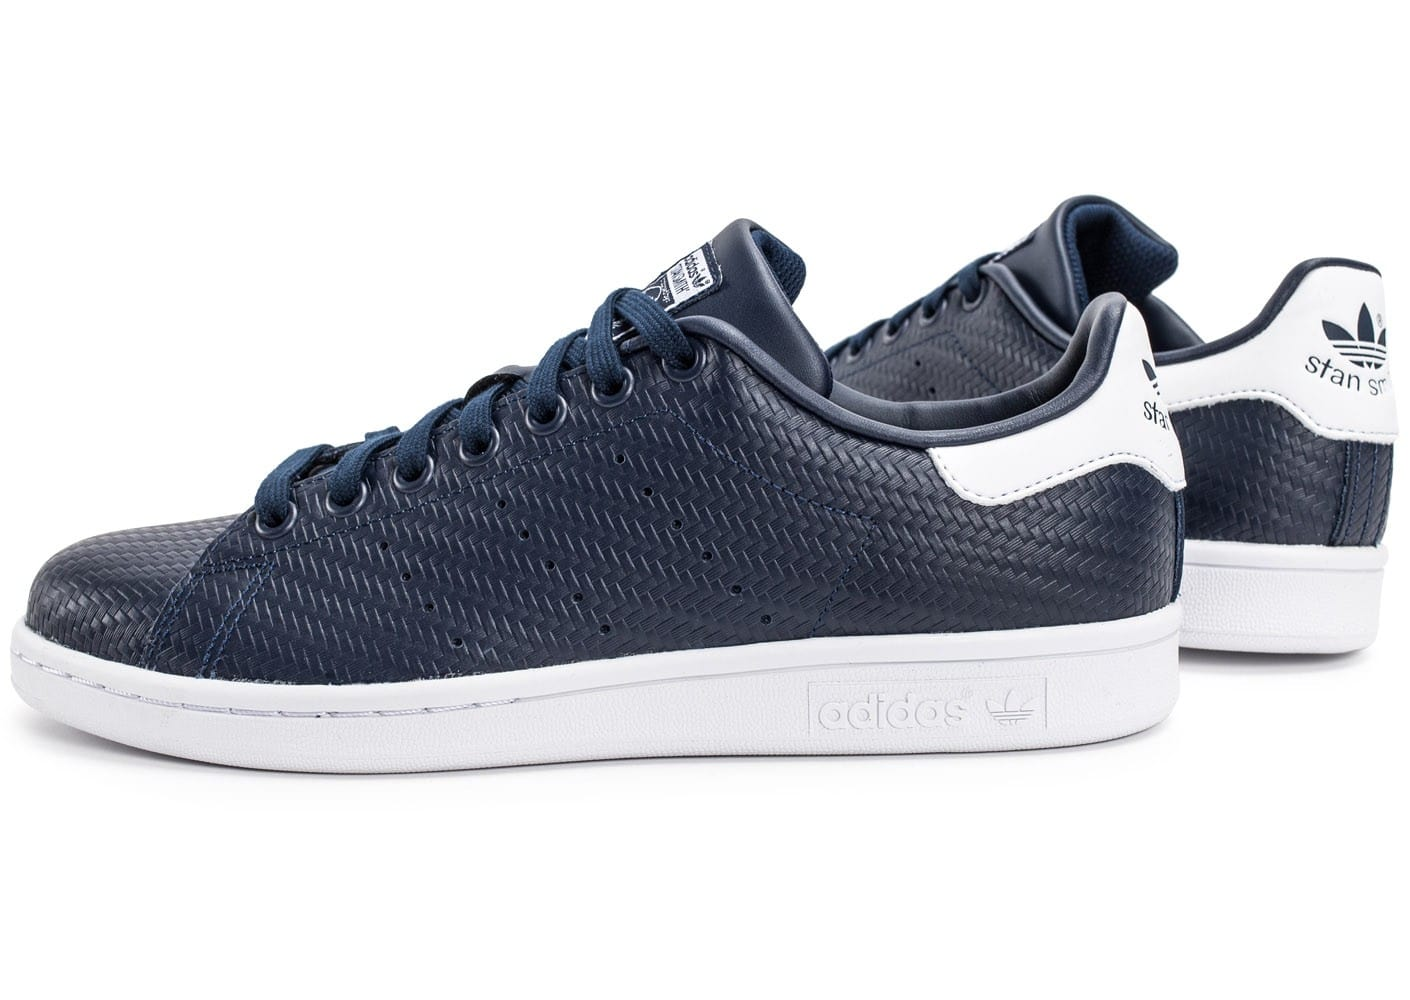 adidas stan smith relief bleu marine chaussures homme chausport. Black Bedroom Furniture Sets. Home Design Ideas